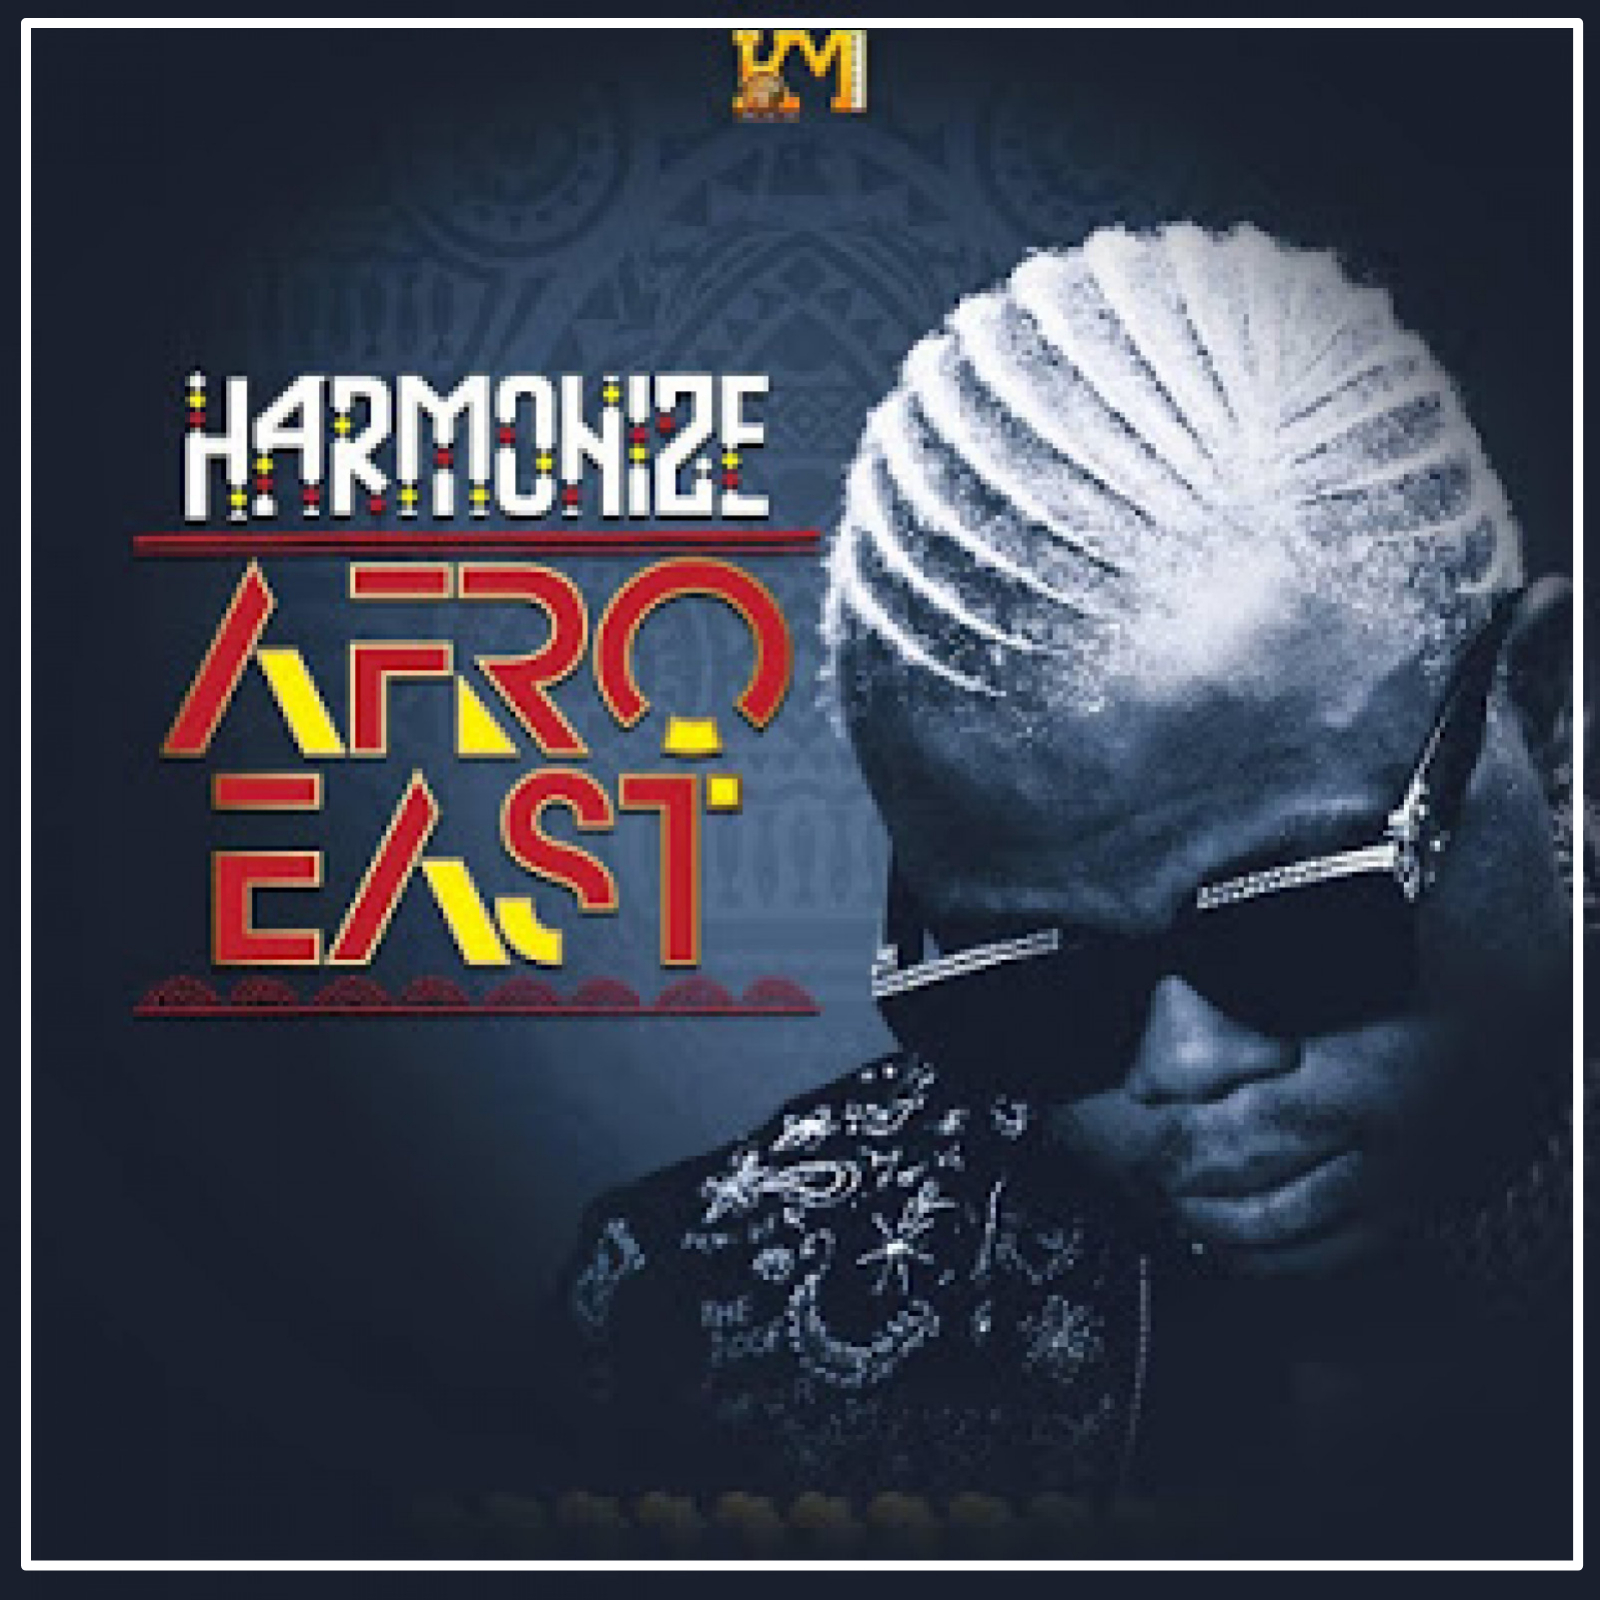 harmonize your body ft burna boy harmonize your body with mind in ghosh's physio centre, harmonize songs, harmonize new song, harmonize uno, harmonize happy birthday, harmonize never give up, harmonize ft diamond, harmonize magufuli, harmonize my boo, harmonize matatizo, harmonize aiyola, harmonize album launch, harmonize afro east, harmonize album, harmonize and diamond, harmonize all songs, harmonize album 2020, harmonize birthday, harmonize burundi, harmonize beat, harmonize beauty bangs, harmonize beauty haircut, harmonize beauty hair, cardi b harmonized, harmonize ft sat b, harmonize happy b, harmonize b, harmonize coke studio, harmonize cover, harmonize concert, harmonize clover, harmonize choir, harmonize chilla, harmonize cover songs, harmonize cover never give up, harmonize clouds, harmonize concert 2019, c major scale harmonized, harmonize diamond, harmonize dully sykes, harmonize darasa, harmonize dance, harmonize diamond platnumz lyrics, harmonize dm chick, harmonize don't give up, harmonize davido, harmonize duet, harmonize darassa, young d harmonize, harmonize d, harmonize eddy kenzo, harmonize example, harmonize english, harmonize effect, harmonize efm, harmonize eazi, harmonize ep, harmonize english interview, harmonize et sa femme, harmonize element, diamond e harmonize, harmonize e fm, harmonize ft mr e, harmonize uno e club dancers, harmonize e.p sumika, harmonize e, harmonize e.p, harmonize ft, harmonize ft yemi alade, harmonize ft skales, harmonize ft davido, harmonize ft mr blue, harmonize ft eddy kenzo, harmonize ft burna boy, harmonize ft rayvanny, harmonize f, harmonize good, harmonize game, harmonize guondo, harmonize group, harmonize guitar, harmonize go low, harmonize give up, harmonize girlfriend, g nako ft harmonize, harmonize hujanikomoa, harmonize hainistui video, harmonize happy birthday lyrics, harmonize hainistui lyrics, harmonize heart and brain, harmonize hujanikomoa video, harmonize house, harmonize happy birthday audio, h baba ft harmonize, h baba na harmonize, h baba harmonize, harmonize h, uno harmonize h baba, harmonize inabana, harmonize in burundi, harmonize instrumental, harmonize imani, harmonize inde, harmonize inauma, harmonize in south sudan, harmonize i love you, harmonize in uganda, i harmonize i lose, i harmonize u jacob collier, harmonize john frog, harmonize jah prayzah, harmonize jeshi, harmonize john, harmonize jeje, harmonize jux, harmonize juba, harmonize jitu, harmonize jet, harmonize john forte, prof j harmonize, master j harmonize, harmonize kainama, harmonize kushoto kulia video, harmonize kidonda changu, harmonize konde boy, harmonize kwangwaru remix, harmonize karaoke, harmonize kadamshi, harmonize kutoka wcb, harmonize k, harmonize latest song, harmonize latest, harmonize lyrics, harmonize live, harmonize lolo, harmonize lifestyle, harmonize love you, harmonize litakufa jitu, harmonize latest song 2019, harmonize lifestyle 2019, harmonize l, l'histoire de harmonize, harmonize mama, harmonize mpya, harmonize music, harmonize mwambie, harmonize my boo lyrics, harmonize mix, harmonize my boo remix, m harmonizer vst, harmonize m, harmonize ft twin m, harmonize new, harmonize nishachoka, harmonize niambie, harmonize nyimbo mpya, harmonize never give up lyrics, harmonize nishapenda, harmonize n, harmonize n diamond, harmonize n a chilla, harmonize na darasa, harmonize n burna boy, harmonize oliver twist, harmonize old songs, harmonize official, harmonize oh baby, harmonize on guitar, harmonize official video, harmonize ost, harmonize oceans, harmonize oliver twist lyrics, harmonize o baby, o holy night harmonize, harmonize practice, harmonize paranawe, harmonize performance, harmonize playlist, harmonize platnumz, harmonize projekt, harmonize penzi, harmonize piano, p chilla ft harmonize, harmonize q chilla, harmonize queen, harmonize q chief, harmonize q chilla lyrics, harmonize q chilla - my boo remix, harmonize q chilla nionyeshe, harmonize queen of my life, harmonize q chilla video, harmonize quits wasafi, harmonize ft q chilla lyrics, harmonize ft q, q chilla x harmonize - nionyeshe lyrics, harmonize remix, harmonize rayvanny, harmonize reaction, harmonize rap, harmonize roho, harmonize relationship, harmonize ritual, harmonize rising, harmonize rich mavoko, harmonize rags, r kelly harmonized, how to harmonize r&b, harmonize show, harmonize show me, harmonize sina, harmonize singeli, harmonize songs happy birthday, harmonize songs 2020, s kide harmonize, harmonize s, harmonize tepete, harmonize type beat, harmonize tanzania, harmonize tik tok, harmonize tz, harmonize tasafu, harmonize to songs, harmonize to this, harmonize tutorial, harmonizing to bruises, young t harmonize, harmonize t, harmonize uno video, harmonize uno lyrics, harmonize upweke, harmonize uno dance, harmonize uganda, harmonize uno audio, harmonize uno reaction, harmonize uno instrumental, love u harmonize, u recken harmonizer, harmonize u, harmonize video, harmonize vocals, harmonize vs diamond, harmonize vocals fl studio, harmonize video songs, harmonize voice, harmonize video mpya, harmonize video mpya 2020, harmonize videos 2019, harmonize vevo, whammy v harmonizer, harmonize with me, harmonize wedding, harmonize with me maggot, harmonize wife, harmonize with yourself, harmonize waka waka, harmonize watoto, harmonize why, harmonize wimbo mpya, harmonize with songs, harmonize x q chilla - my boo remix, harmonize x q chilla, harmonize x q chilla - my boo remix audio, harmonize x rich mavoko, harmonize x burna boy x diamond platnumz, harmonize x rayvanny, harmonize x q chilla - my boo remix lyrics, harmonize x diamond platnumz, harmonize x burna boy, harmonize x rich mavoko - show me lyrics, q chilla x harmonize, skales x harmonize, logic pro x harmonizer, rayvanny x harmonize penzi, eddy kenzo x harmonize, darassa x harmonize yumba, country boy x harmonize, john frog x harmonize, maua sama x harmonize, diamond x harmonize, harmonize yumba, harmonize yemi alade, harmonize yatapita, harmonize yope, harmonize yad, harmonize nyumba lyrics, harmonize you are the one i love, harmonize your voice, harmonize youtube channel, harmonize your heart and brain, show ya harmonize tandahimba, singeli ya harmonize, harmonize ft y prince, harmonize zilipendwa, harmonize zezeta video, harmonize zamina mina, harmonize zawadi kwa wazazi, harmonize zoba, harmonize zoom, harmonize zuzu, harmonize zumba, harmonize zaga, harmonize zote, harmonize 117, harmonize 10 over 10, harmonize 10 over 10 last night, harmonize 10 over 10 interview, harmonize 10 over 10 2019, harmonize 199, harmonize 18, harmonize in 10 over 10 latest, boss gt 1 harmonizer, 1 2 oatmeal harmonized, harmonize 2019, harmonize 2020 songs, harmonize 2018, harmonize 2019 songs, harmonize 2020 new song, harmonize 2015, harmonize 2017, harmonize 2016, harmonize 2018 songs, bias fx 2 harmonizer, izotope vocalsynth 2 harmonizer, boss ve-2 harmonizer, vocalsynth 2 harmonizer, nectar 2 harmonizer, digitech vocalist 2 harmonizer, harmonize projekt 2, how to harmonize 2 guitars, harmonize part 2, harmonize 31, harmonize 3 nite float, how to harmonize 3b4joy, harmonize kuuza nyumba 3, 3 sisters harmonize beautiful song, harmonize show 31, harmonize dakika 30, aroma ahar-3 harmonizer, izotope nectar 3 harmonizer, axe fx 3 harmonizer, harmonize 40 ya naseeb, 4 harmonized peyote songs, 4 pockets vocal harmonizer, 4 pockets harmonizer, harmonize miaka 58 ya uhuru, memories maroon 5 harmonize, aroma ahar-5 harmonizer, top 5 harmonized battles, guitar rig 5 harmonizer, cubase 5 harmonizer, merish 5 harmonizer, 639hz harmonize relationships, line 6 harmonizer, harmonize ft dj 7, harmonize block 89, harmonize block 88.9, boss gt 8 harmonizer, harmonize 911, harmonize 911 lyrics, harmonize 911 mp3, harmonize songs 911